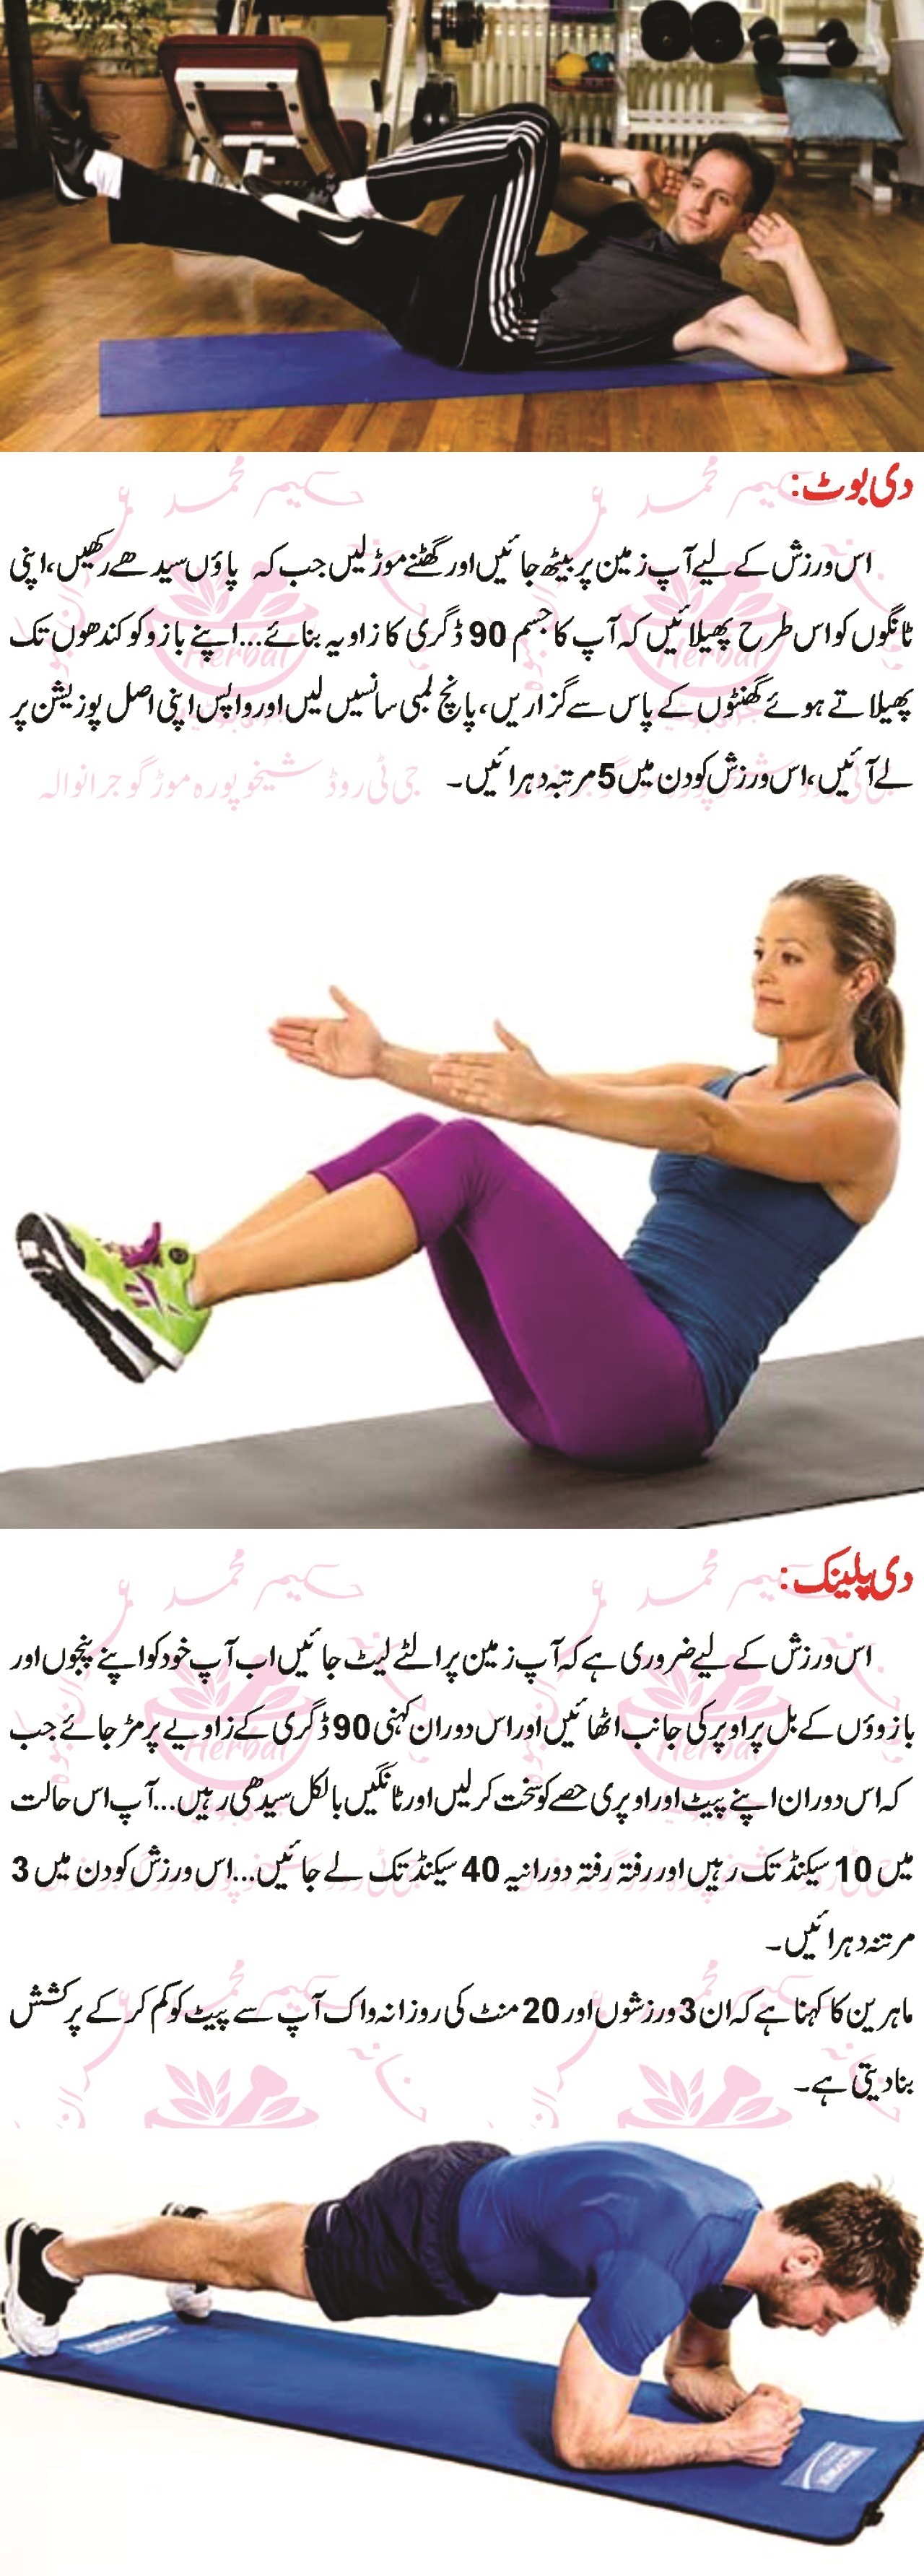 How To Lose Weight ( Wazan Kam Karna) With Exercise In Urdu 2